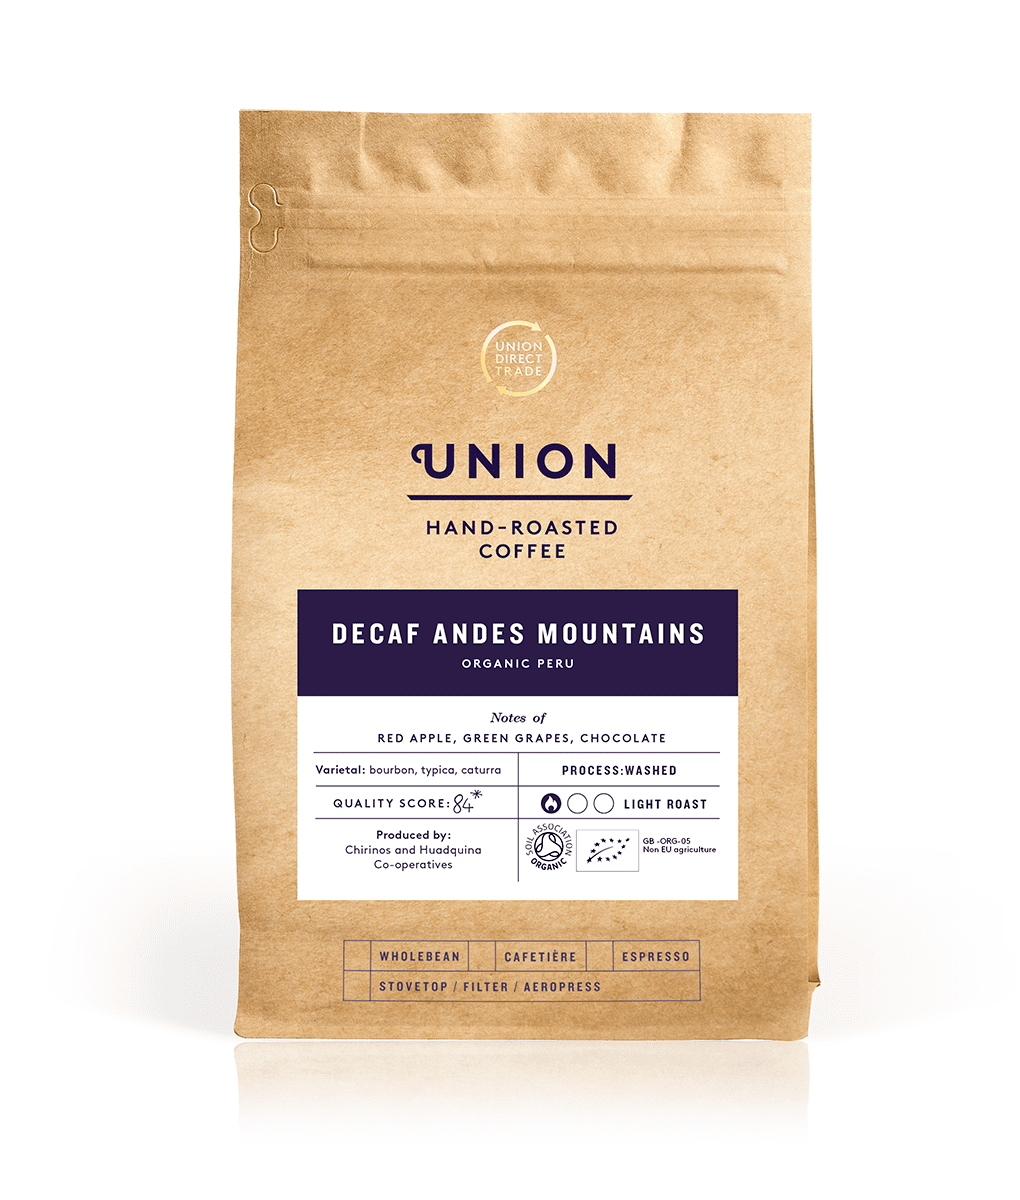 Decaf Andes Mountains, Organic Peru